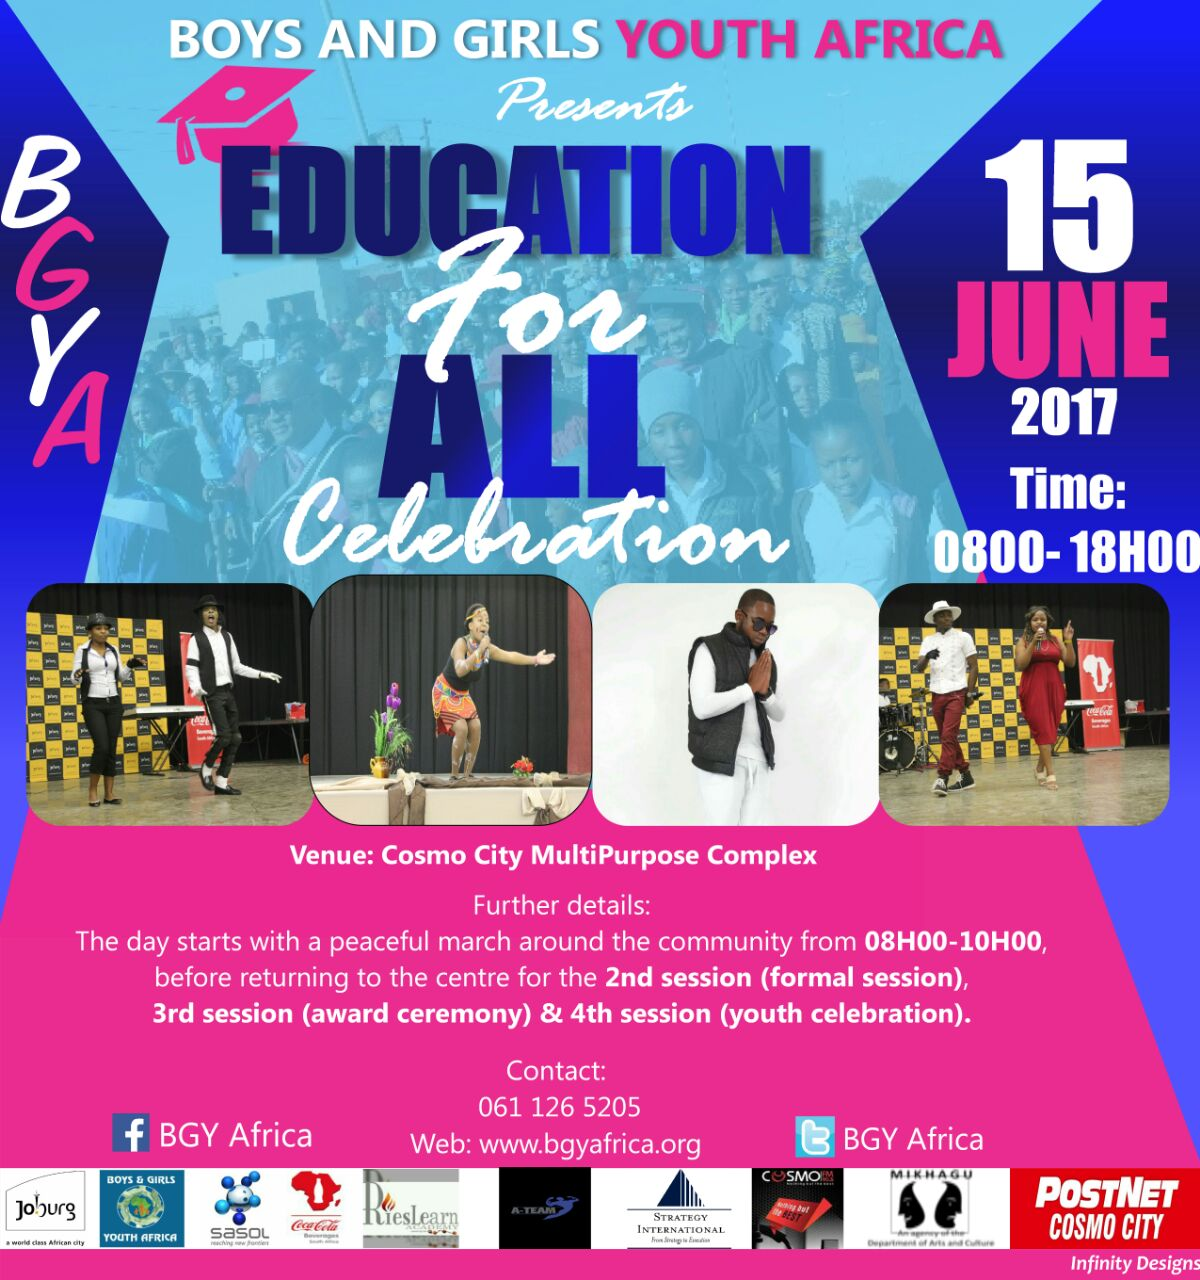 2017 June 15 Education for ALL